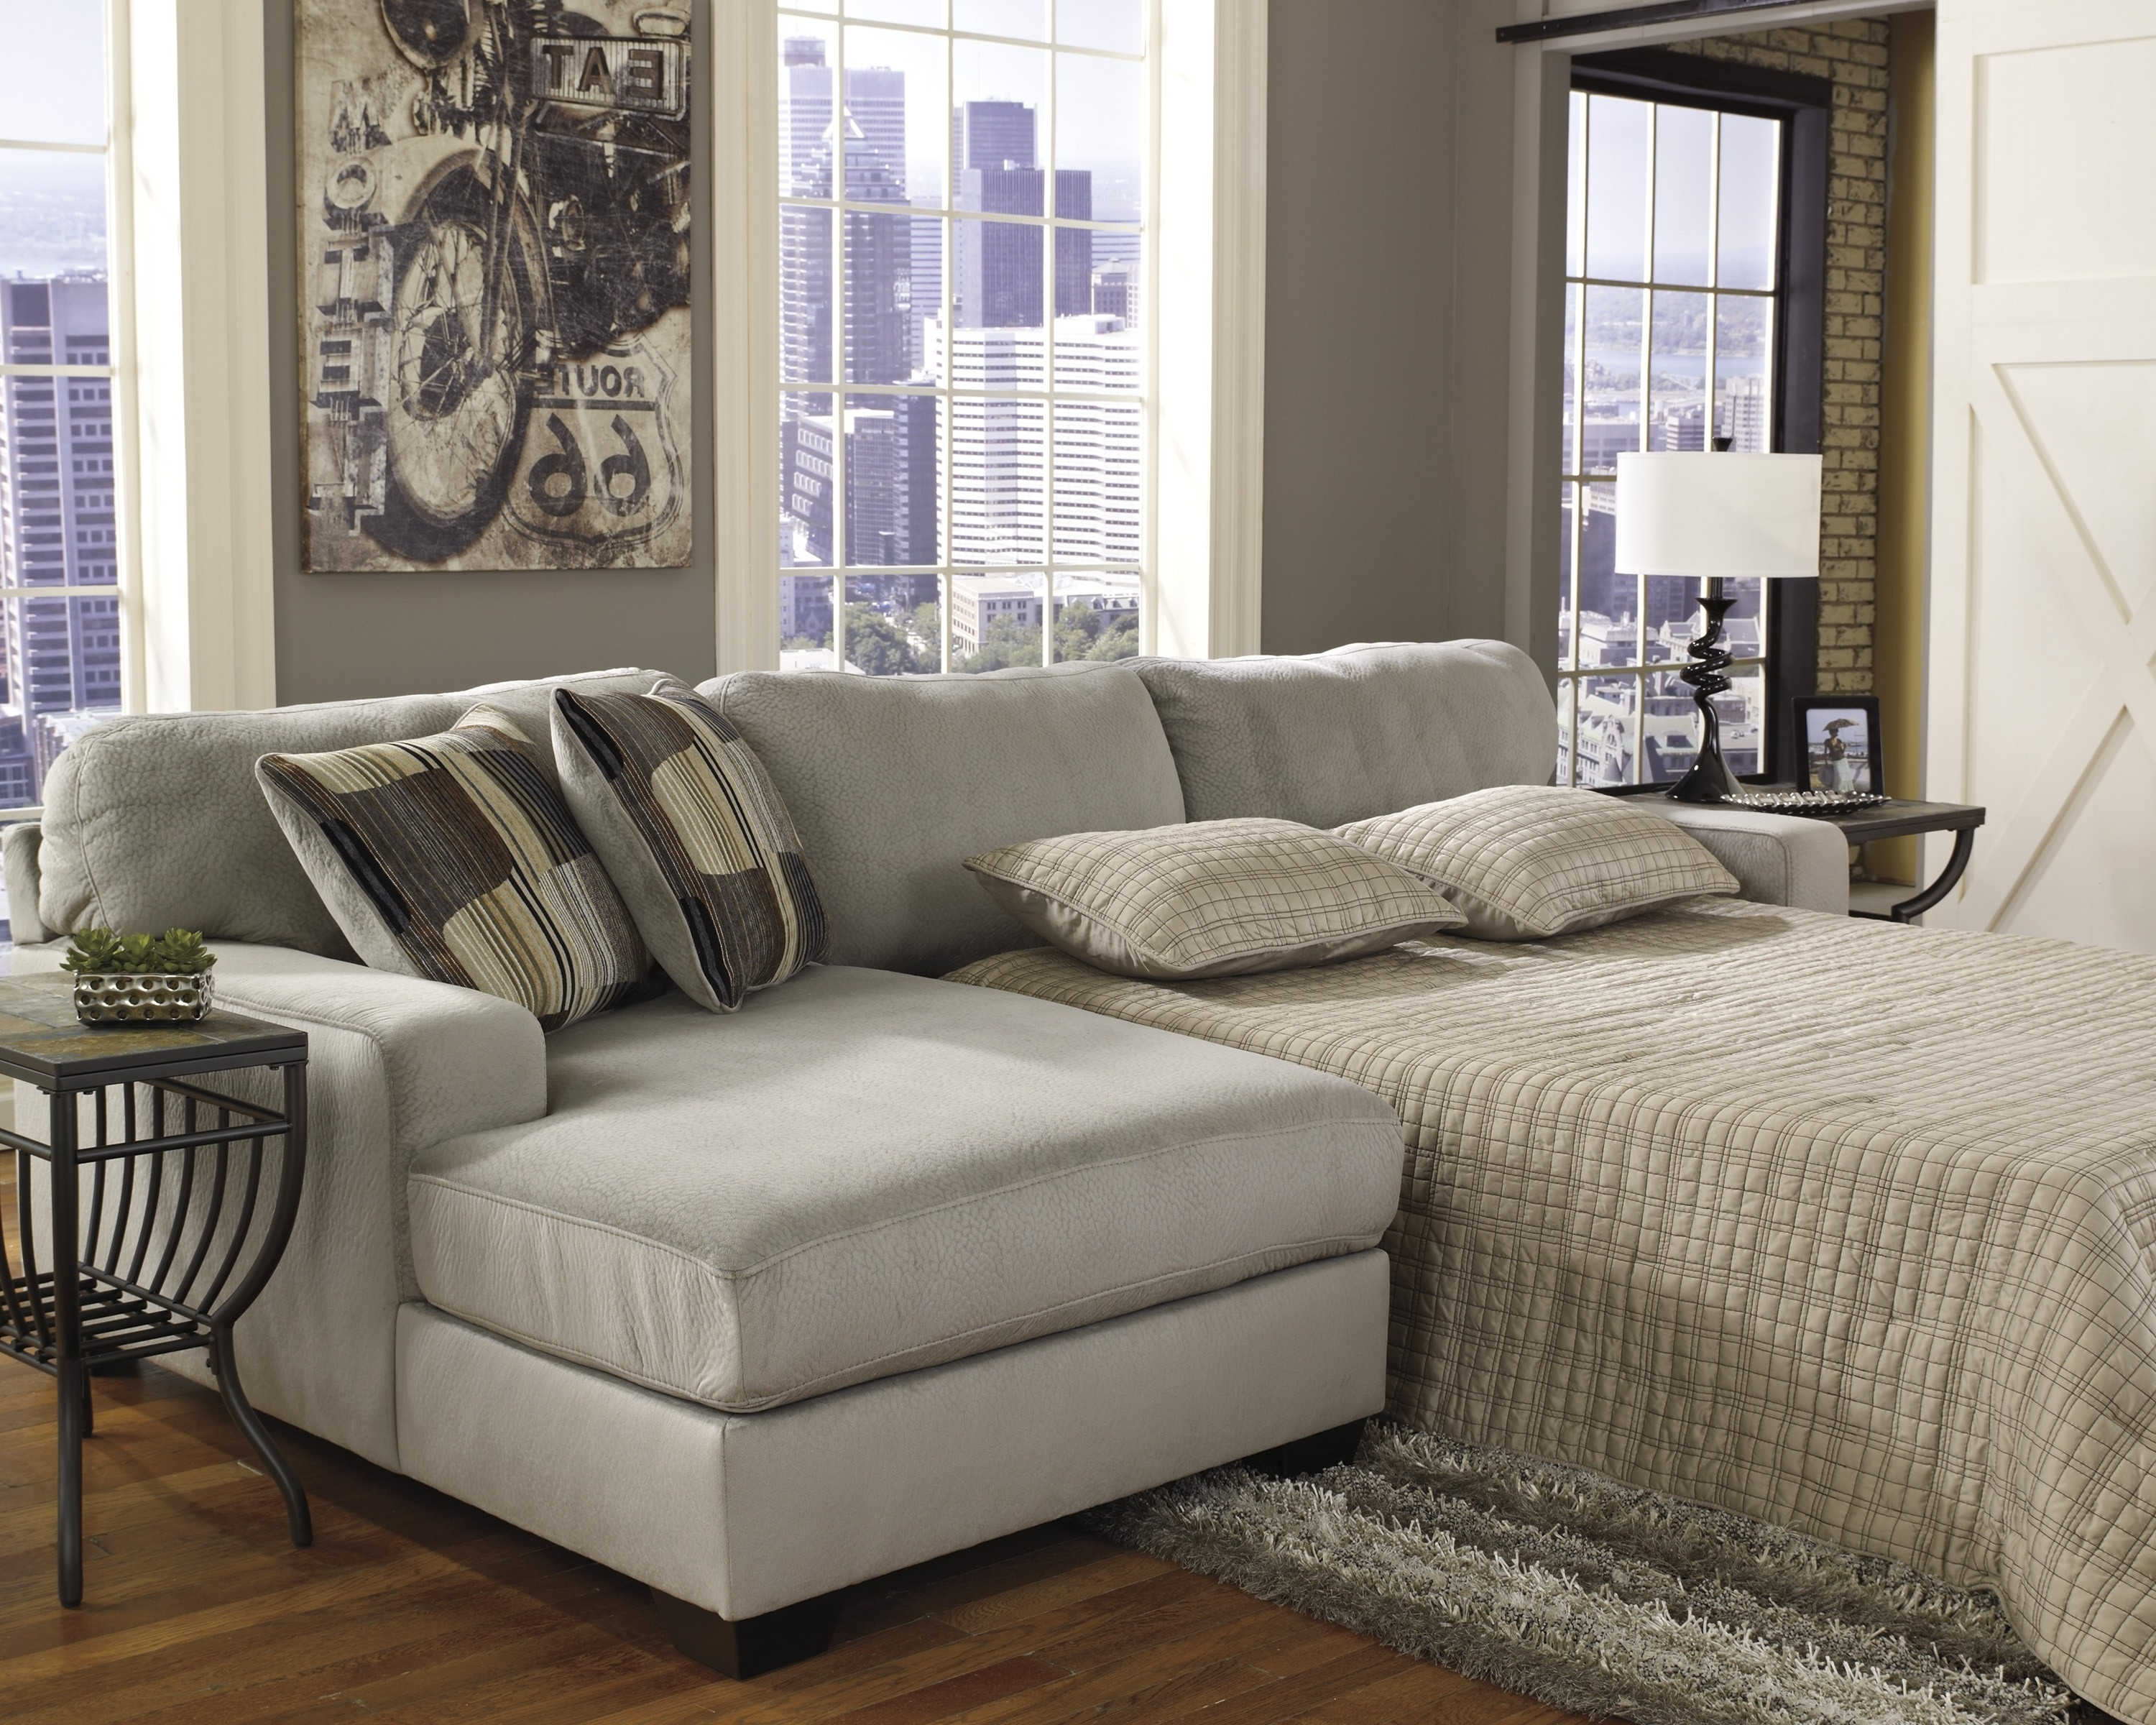 Stunning Sectional Sleeper Sofa With Chaise Latest Cheap Furniture Intended For Famous Sectional Sleeper Sofas With Chaise (View 15 of 15)